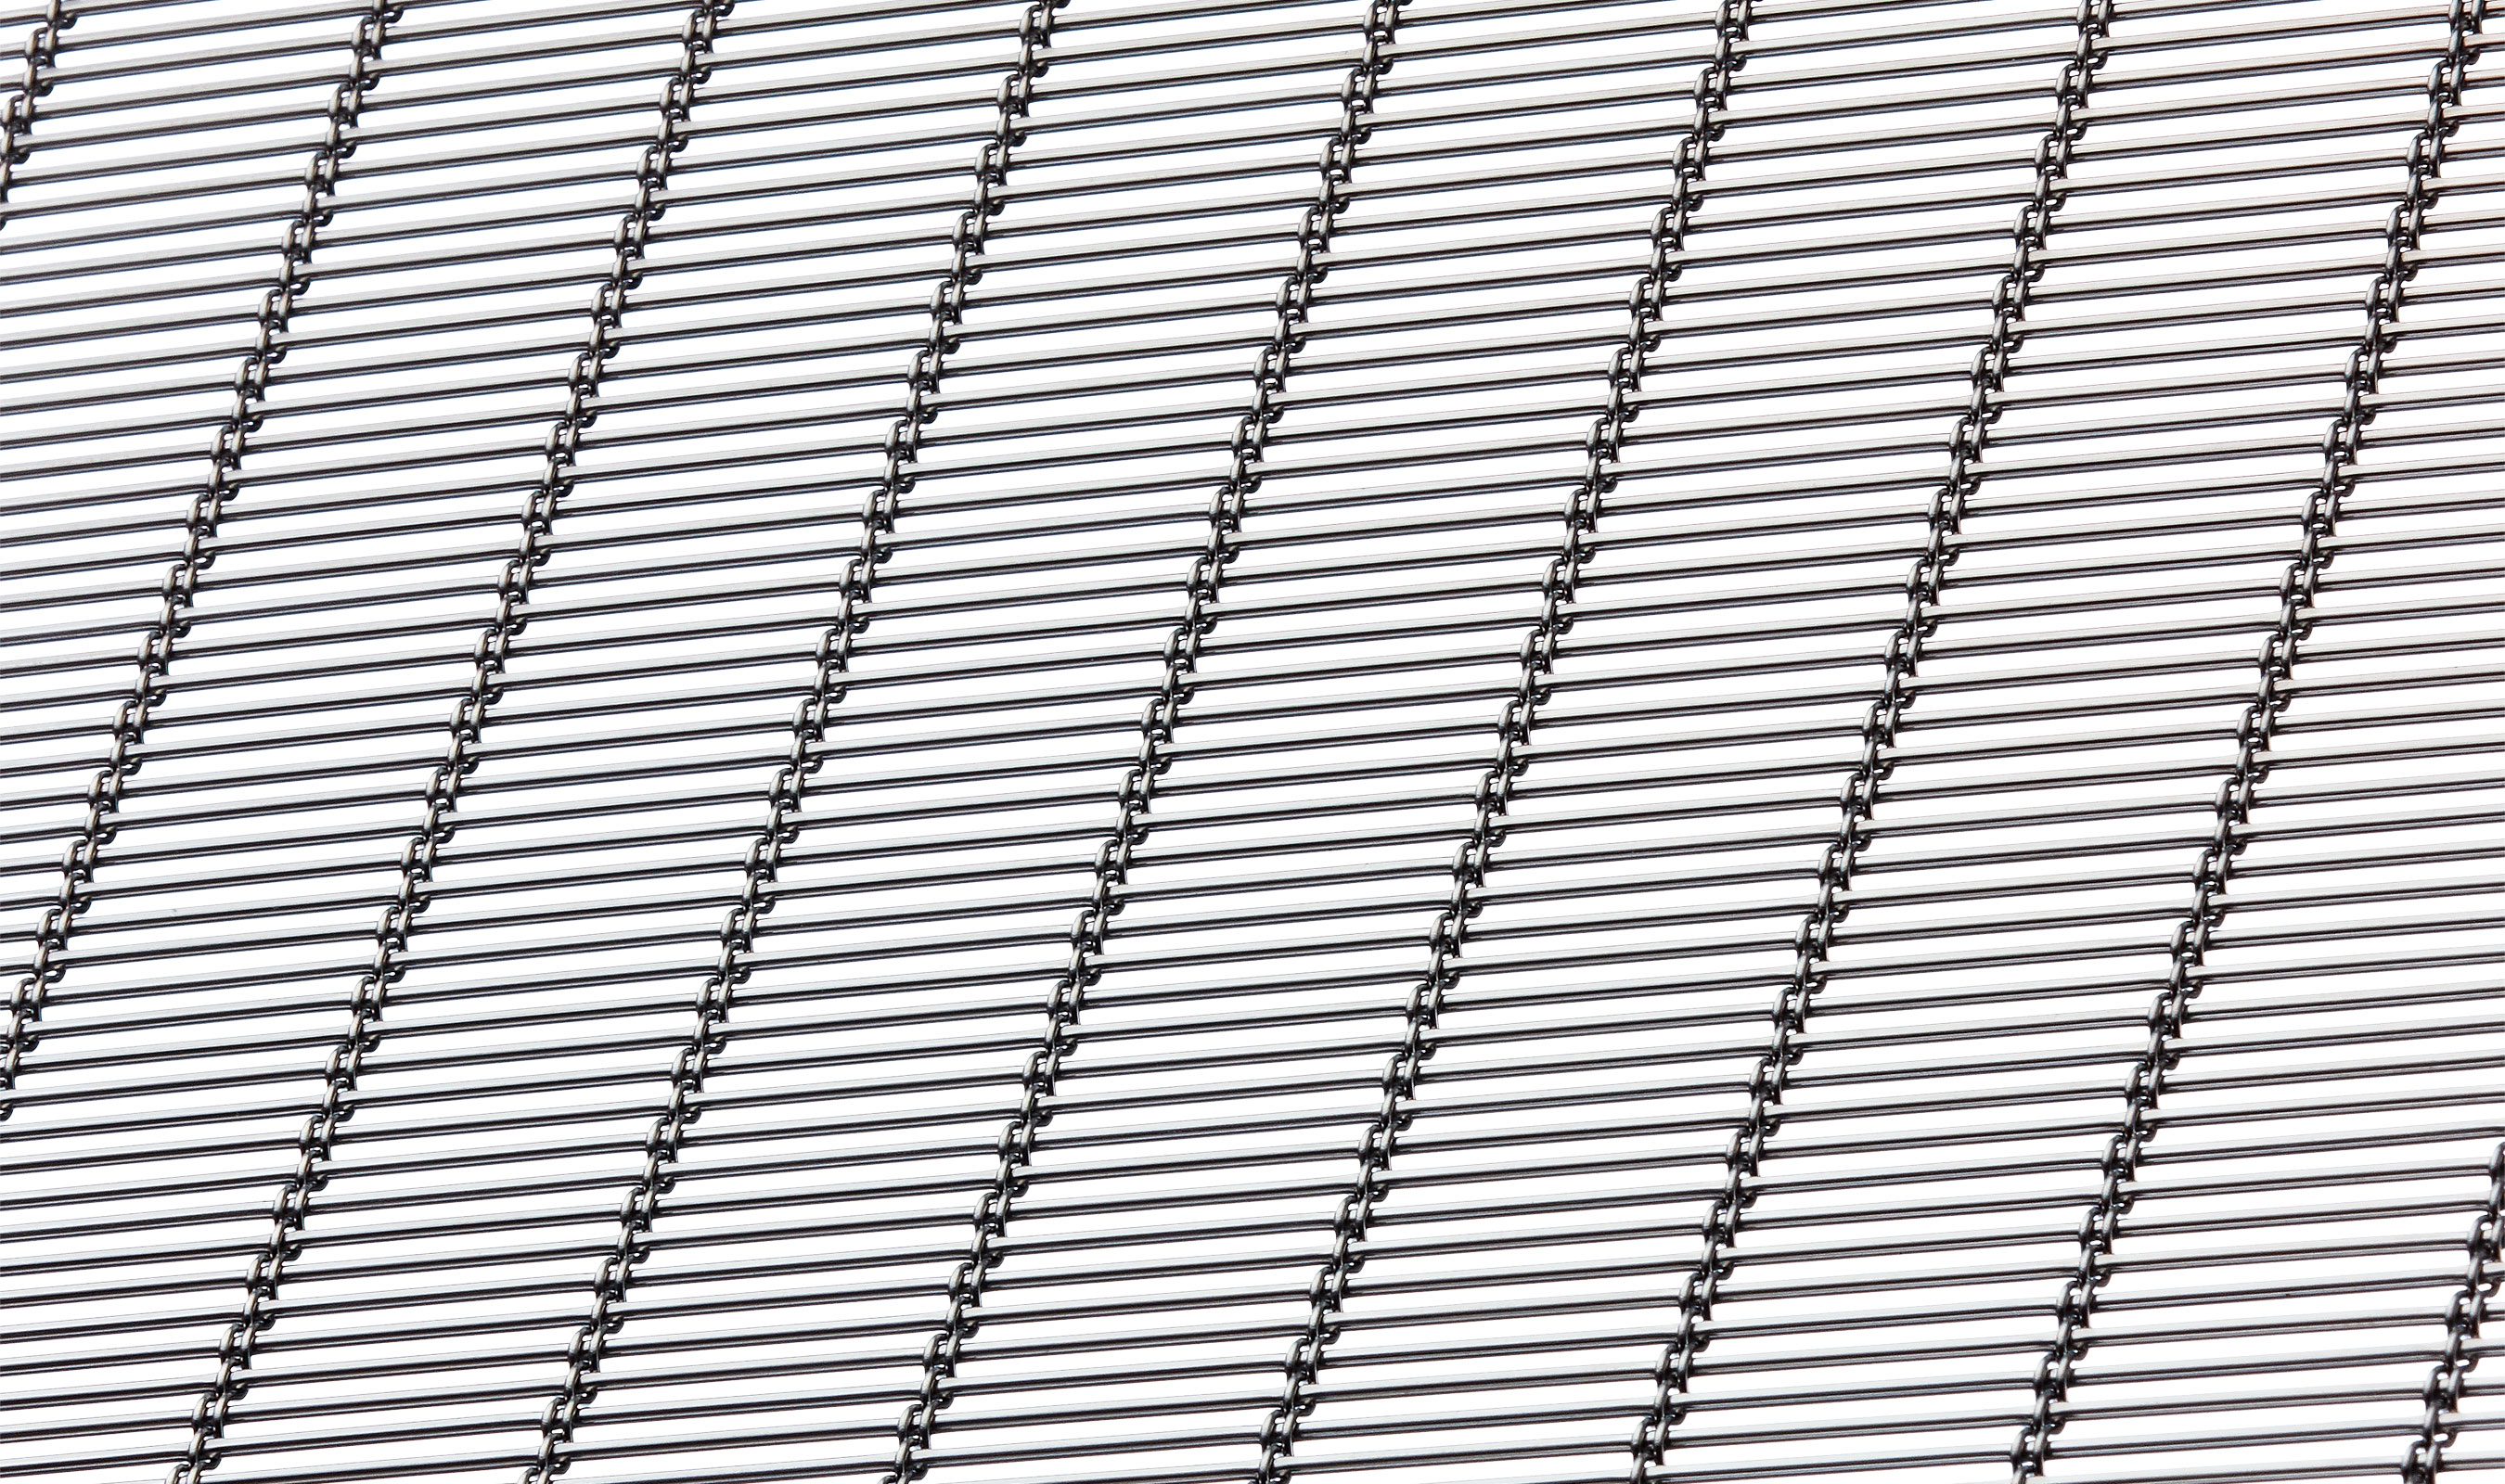 M13Z-247 Angle in Stainless Woven Wire Mesh